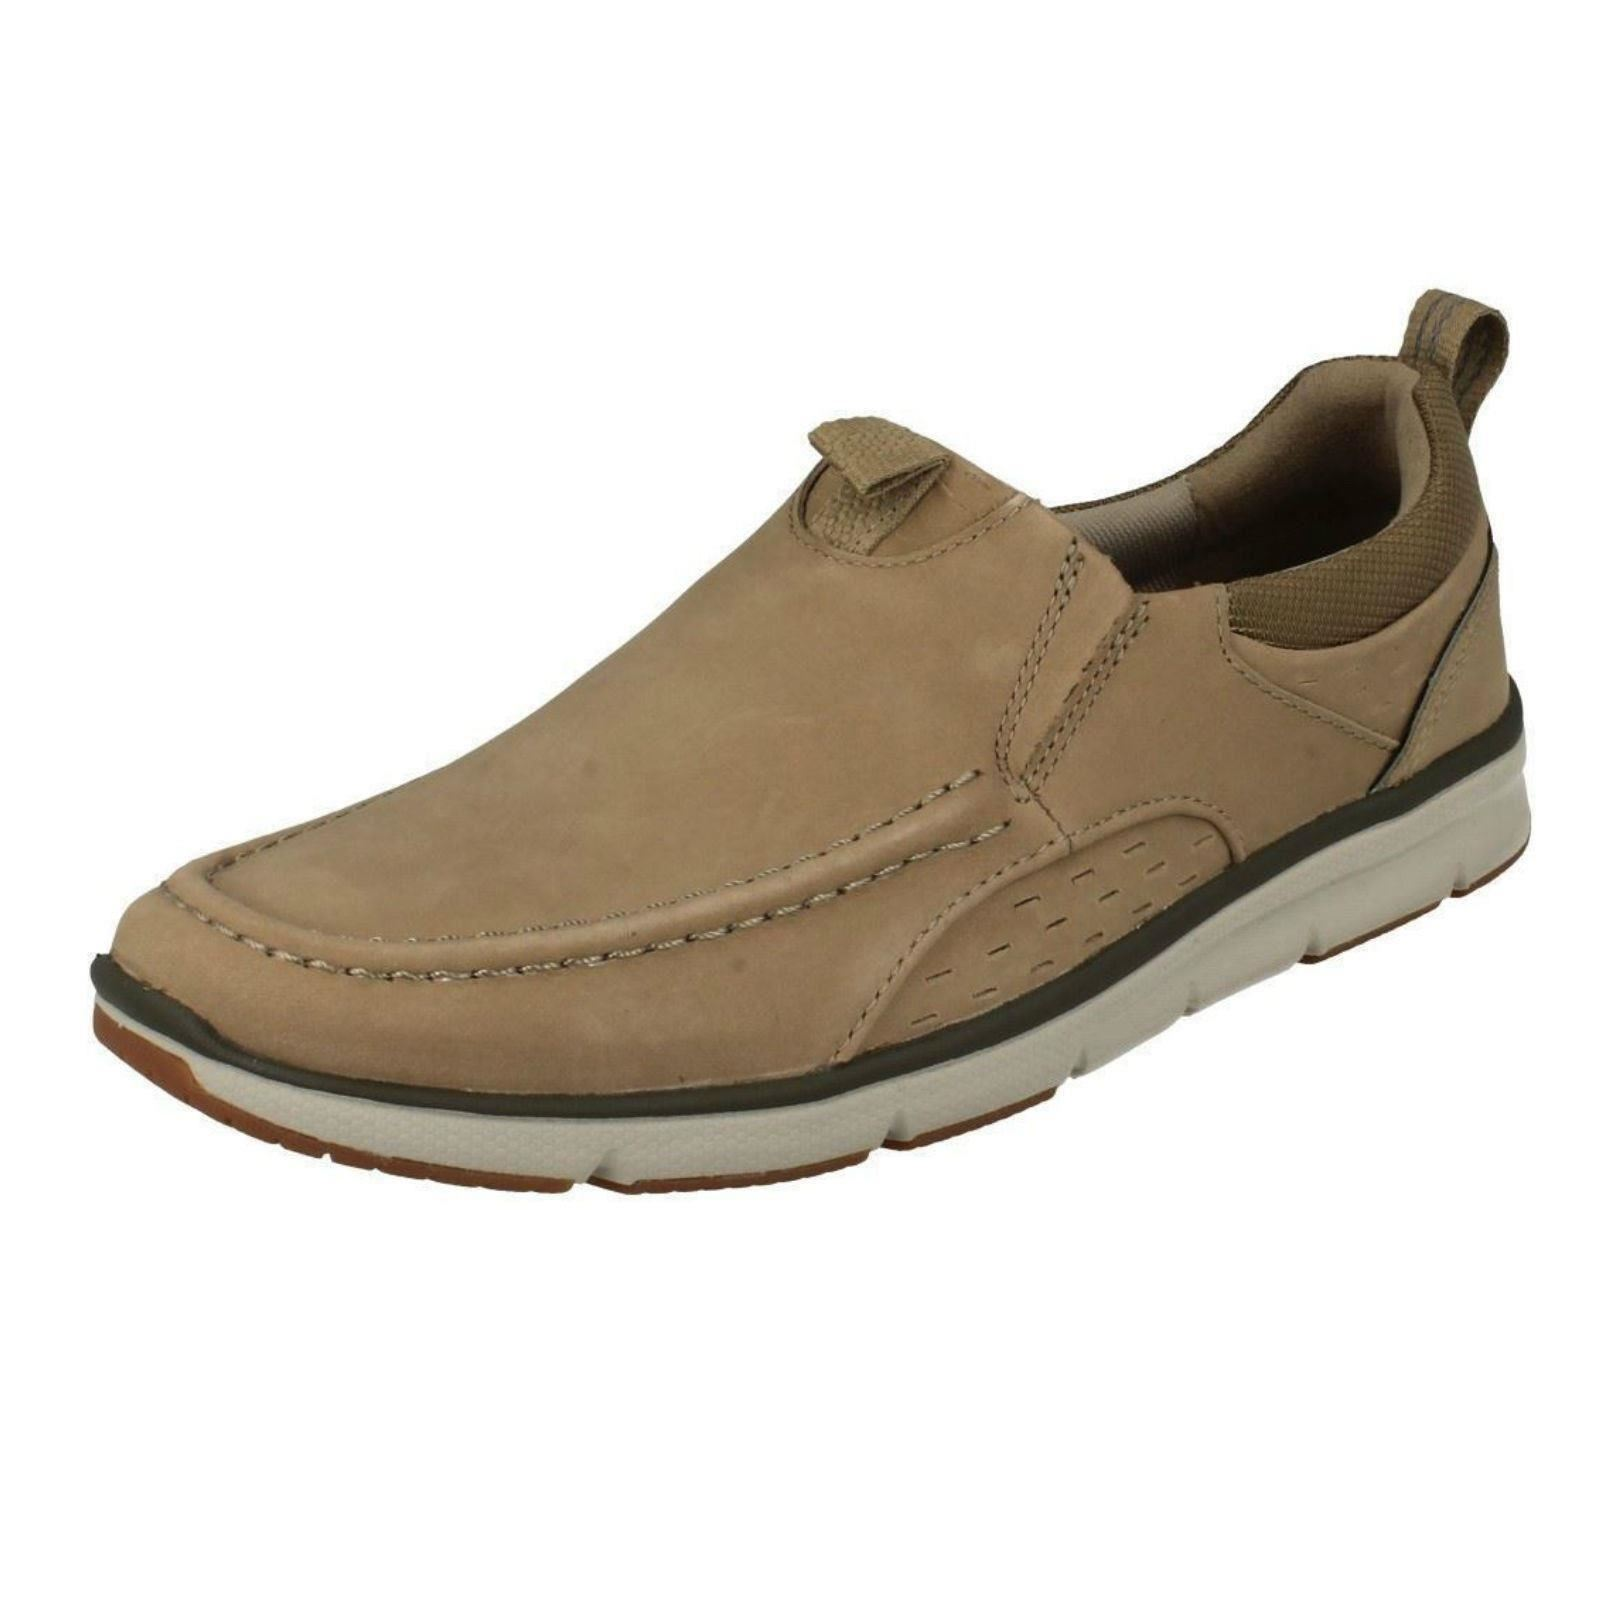 Herren Clarks Moccasin Moccasin Moccasin Style Slip On Schuhes Orson Row 429831